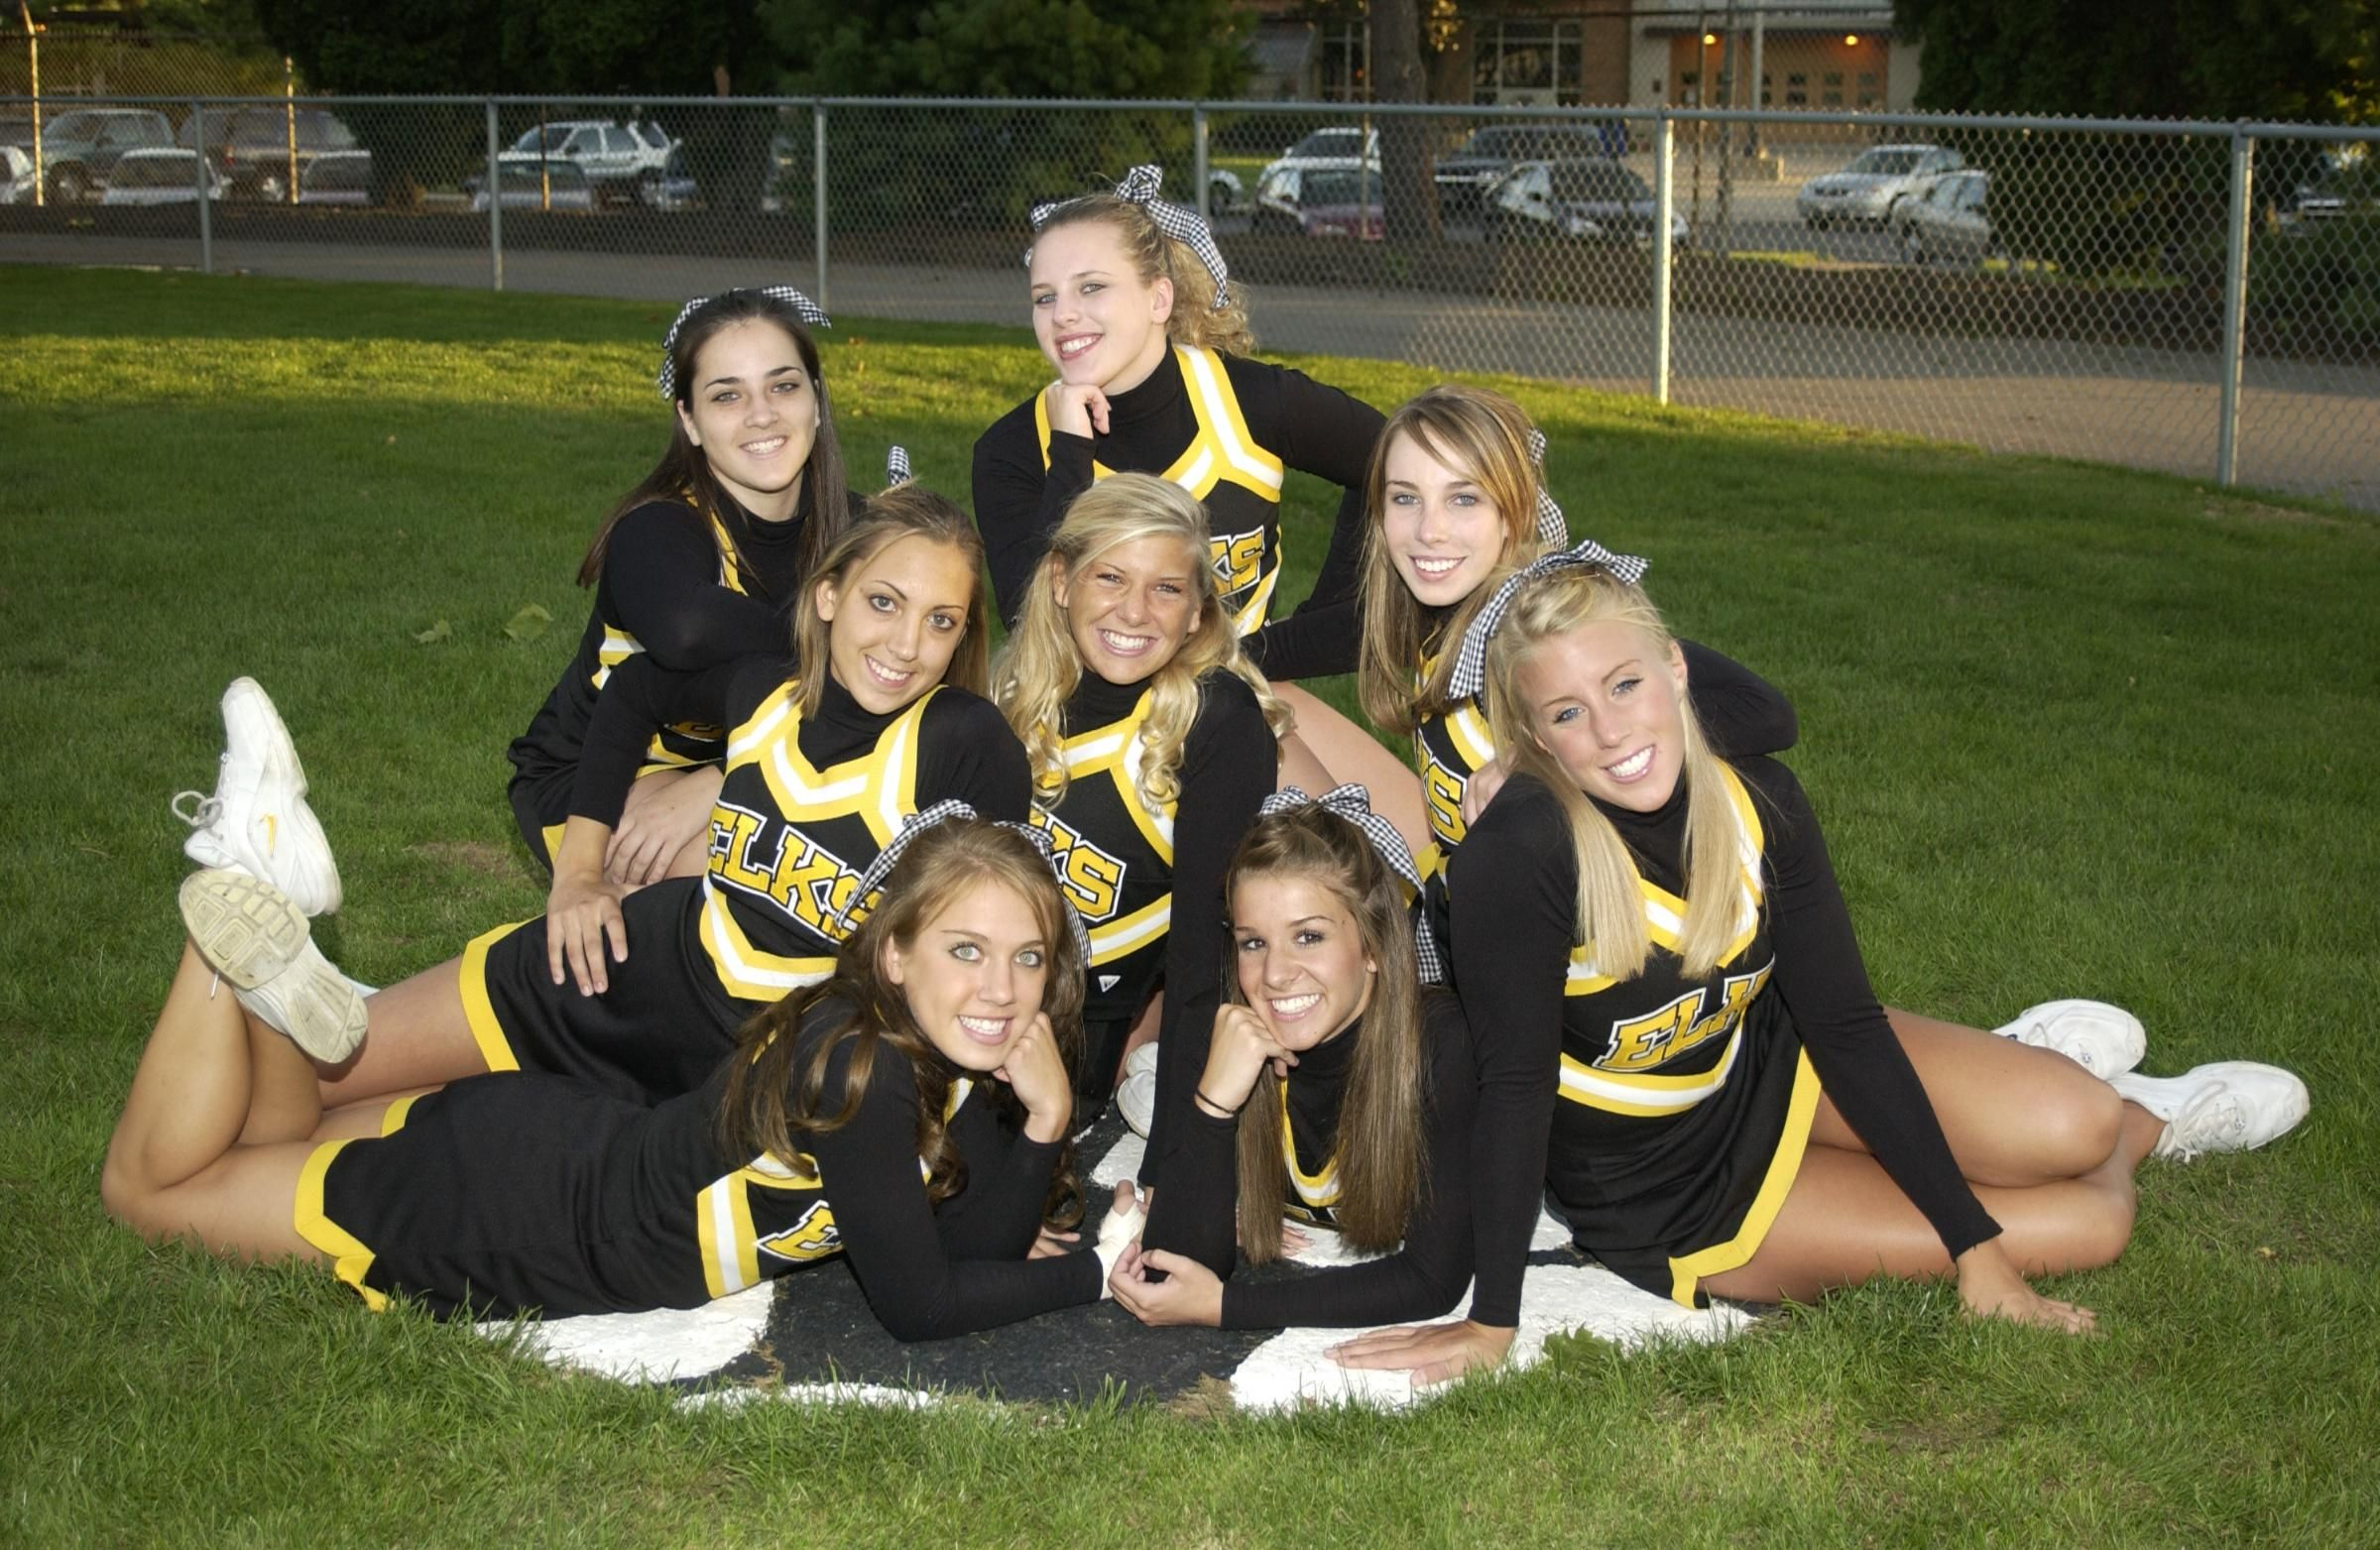 #cheer high school cheerleading pose photography ...